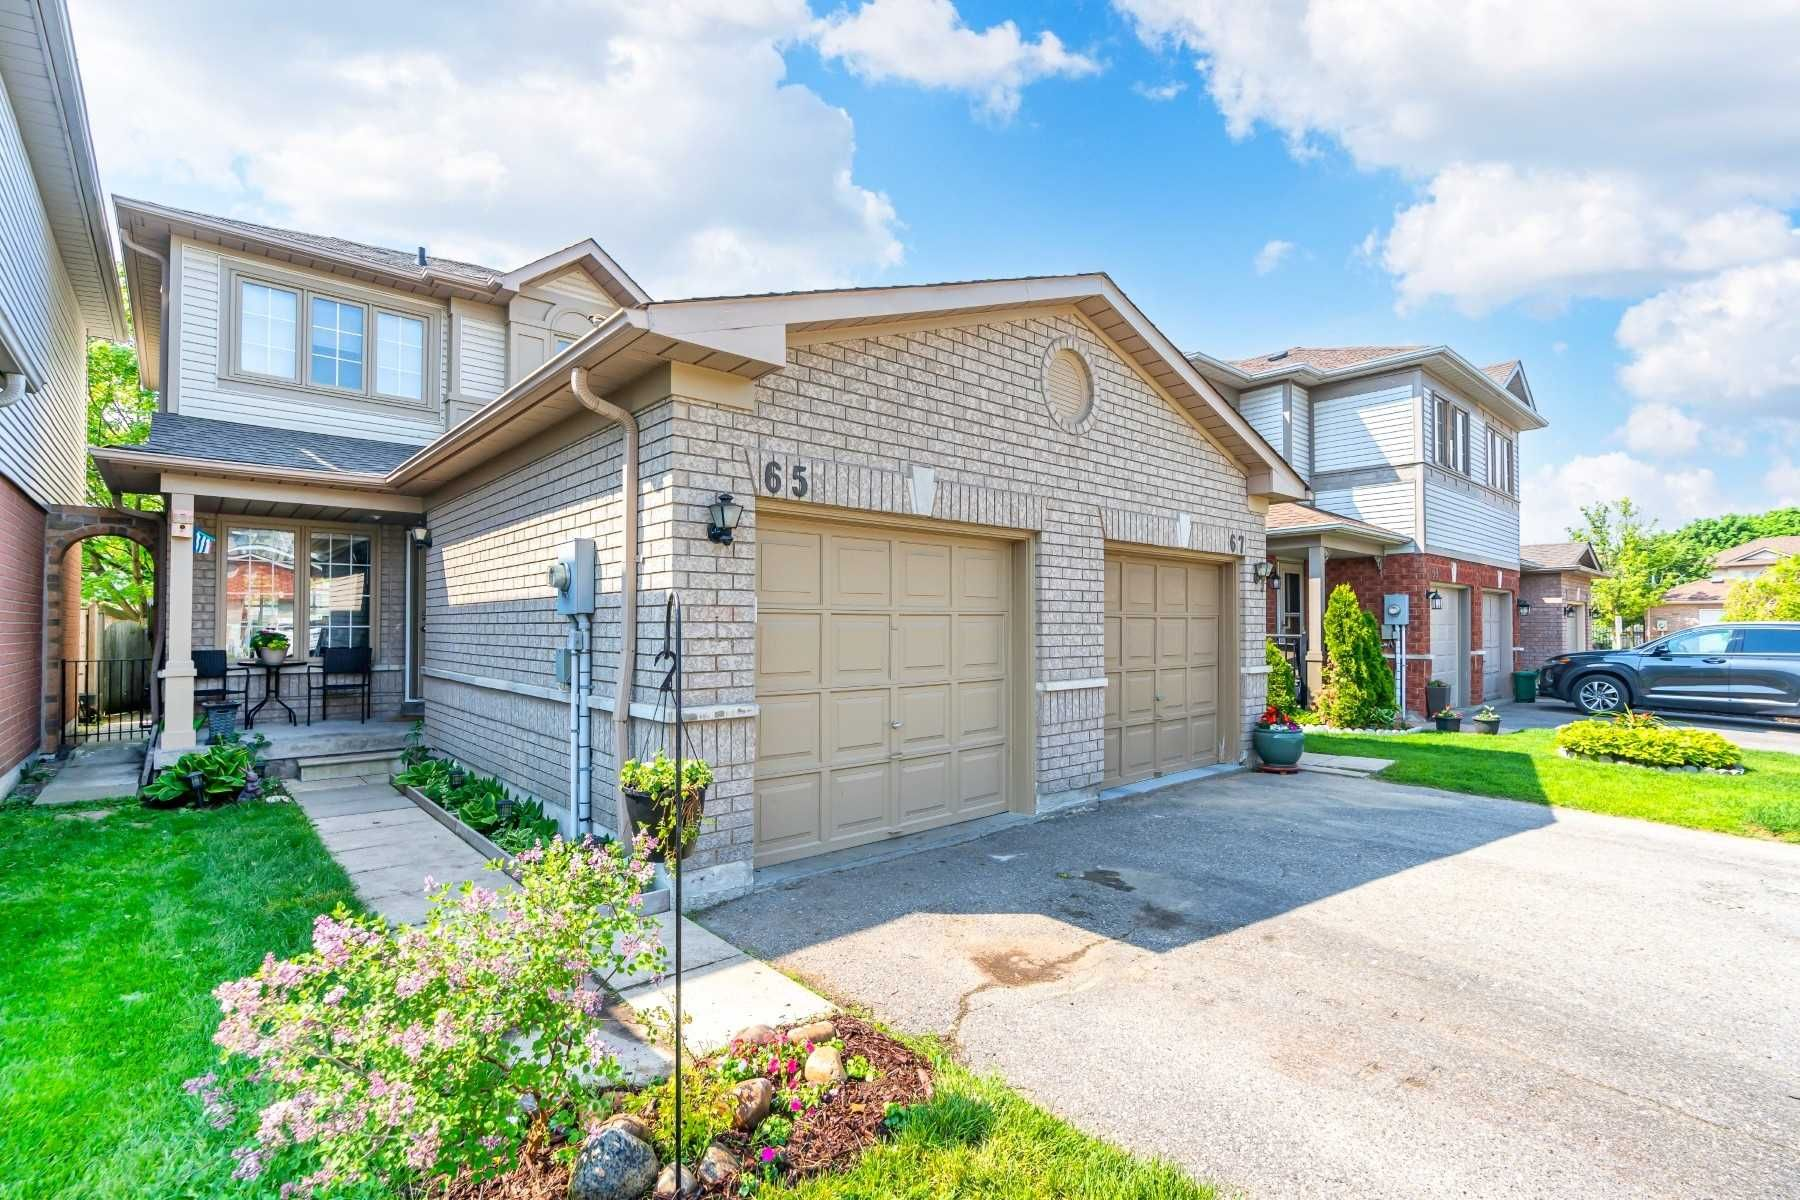 Main Photo: 65 Greengrove Way in Whitby: Rolling Acres Condo for sale : MLS®# E5248297